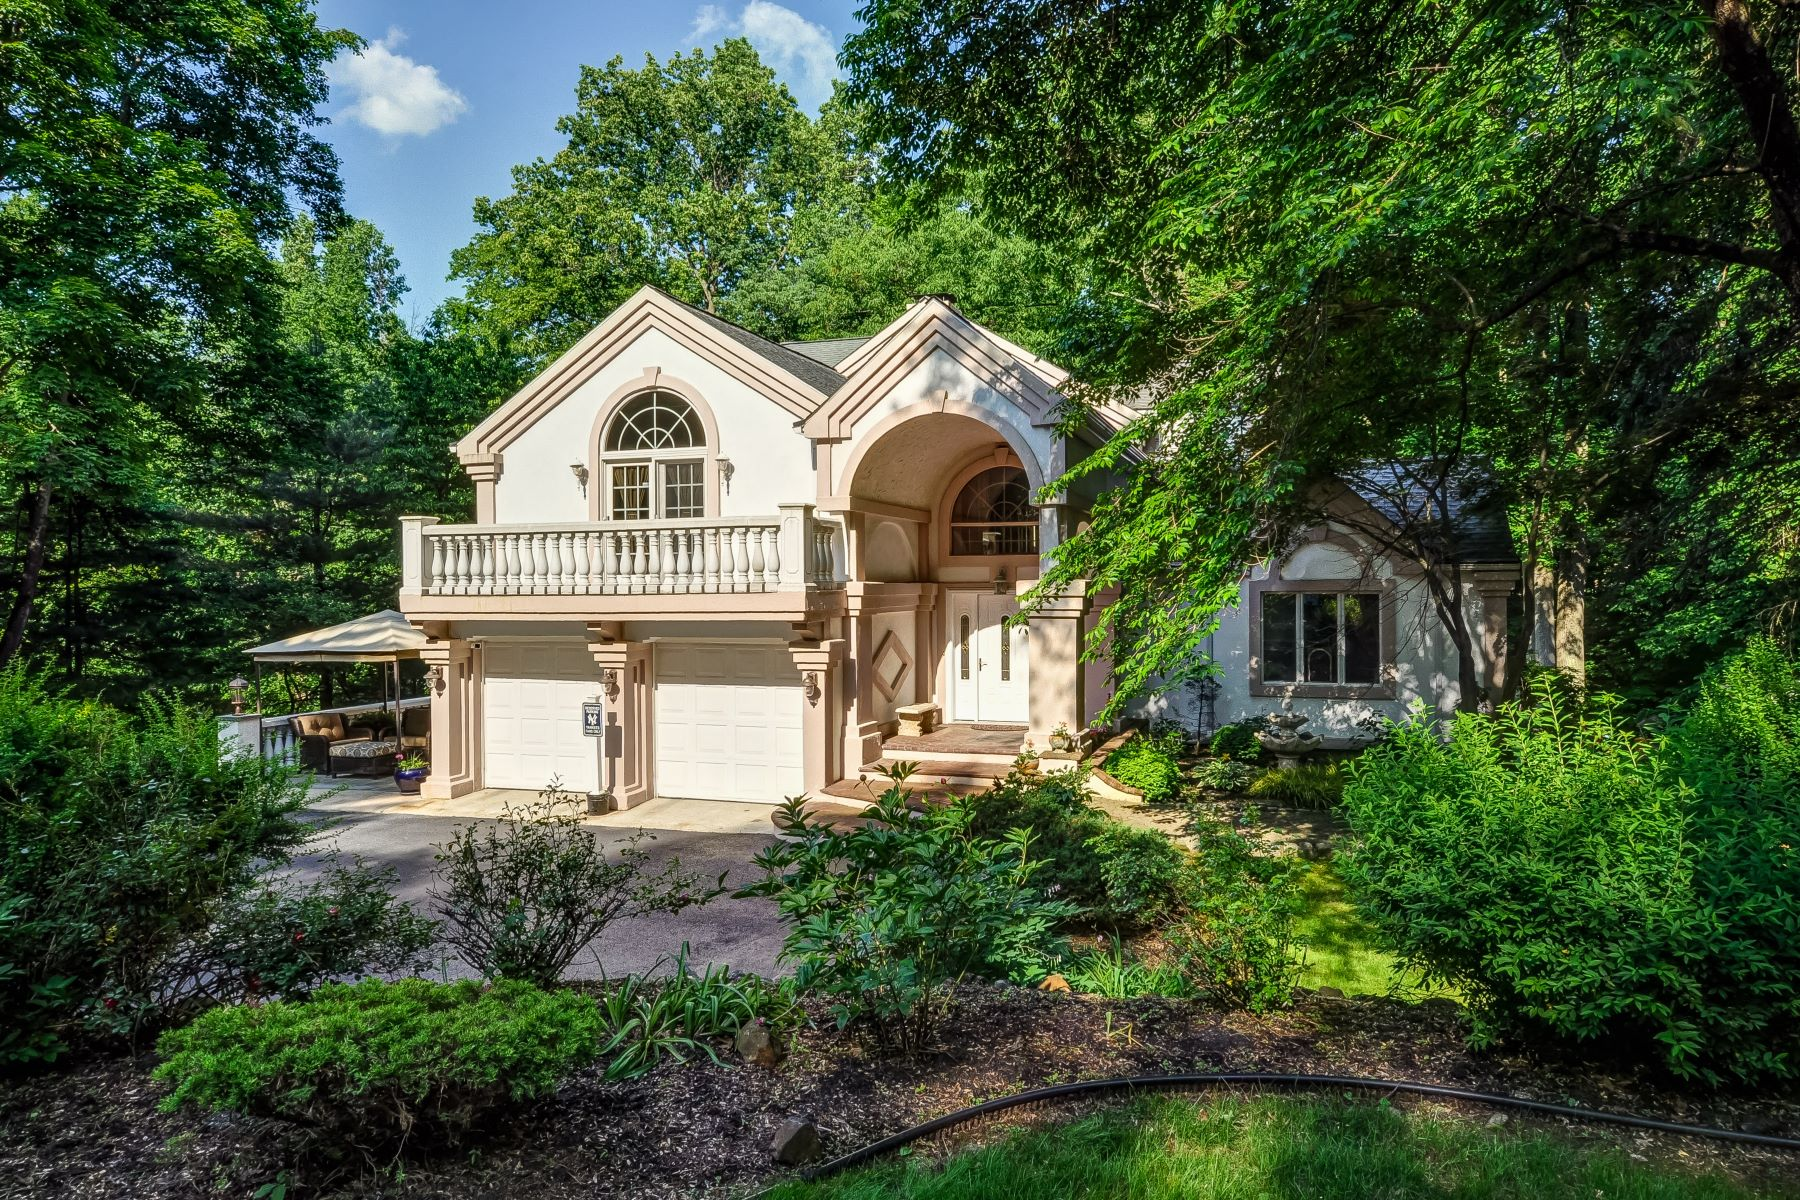 Single Family Homes for Sale at Gracious Custom Colonial 158 Old Stirling Road Warren, New Jersey 07059 United States